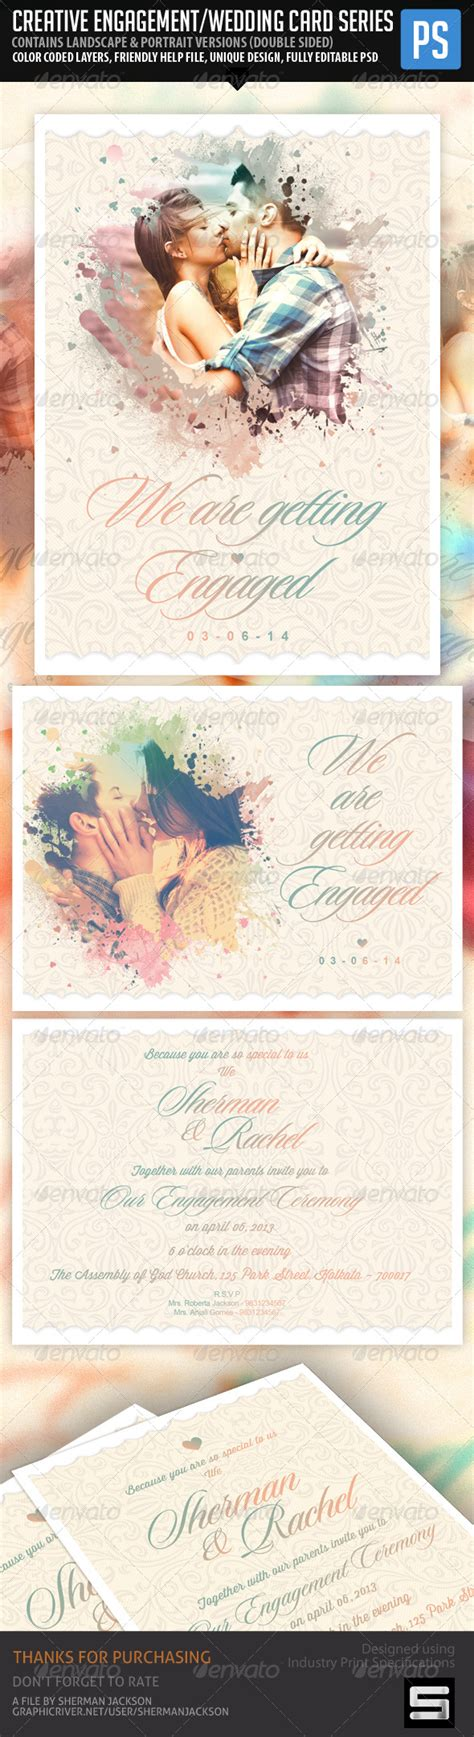 creative wedding card templates creative engagement wedding card graphicriver